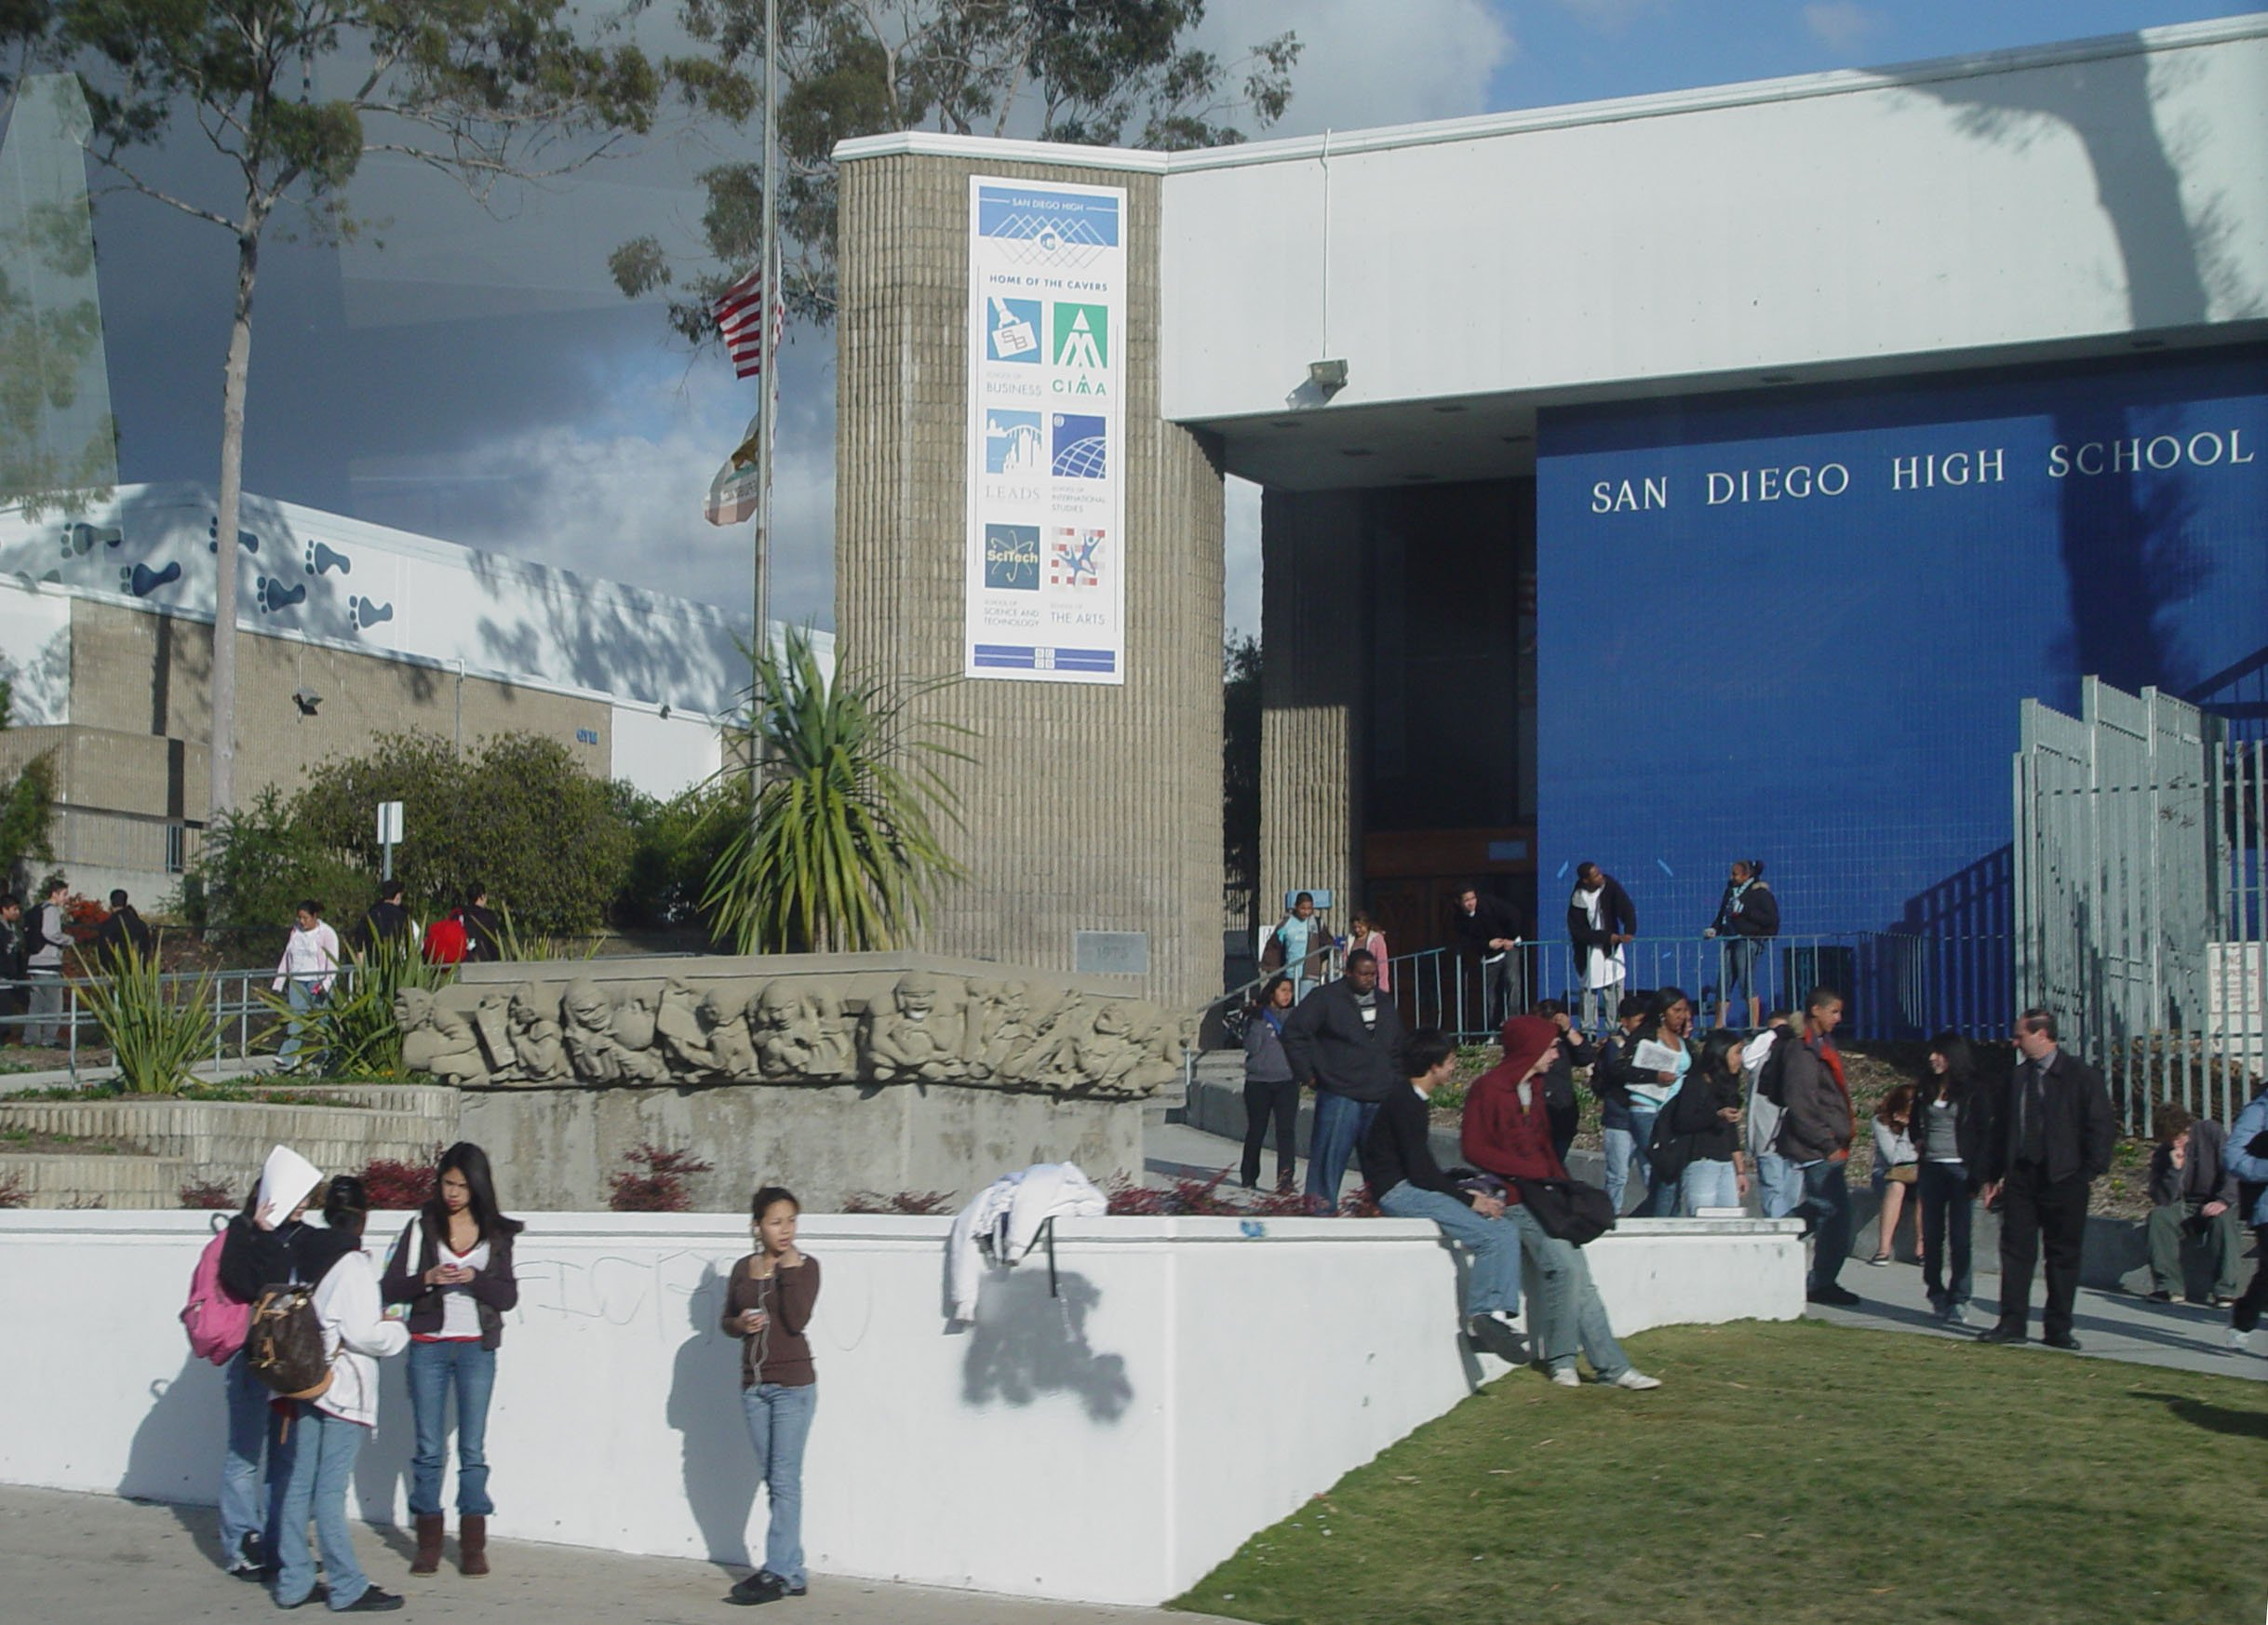 If Measure I Passes, San Diego High School Will Remain In Balboa Park